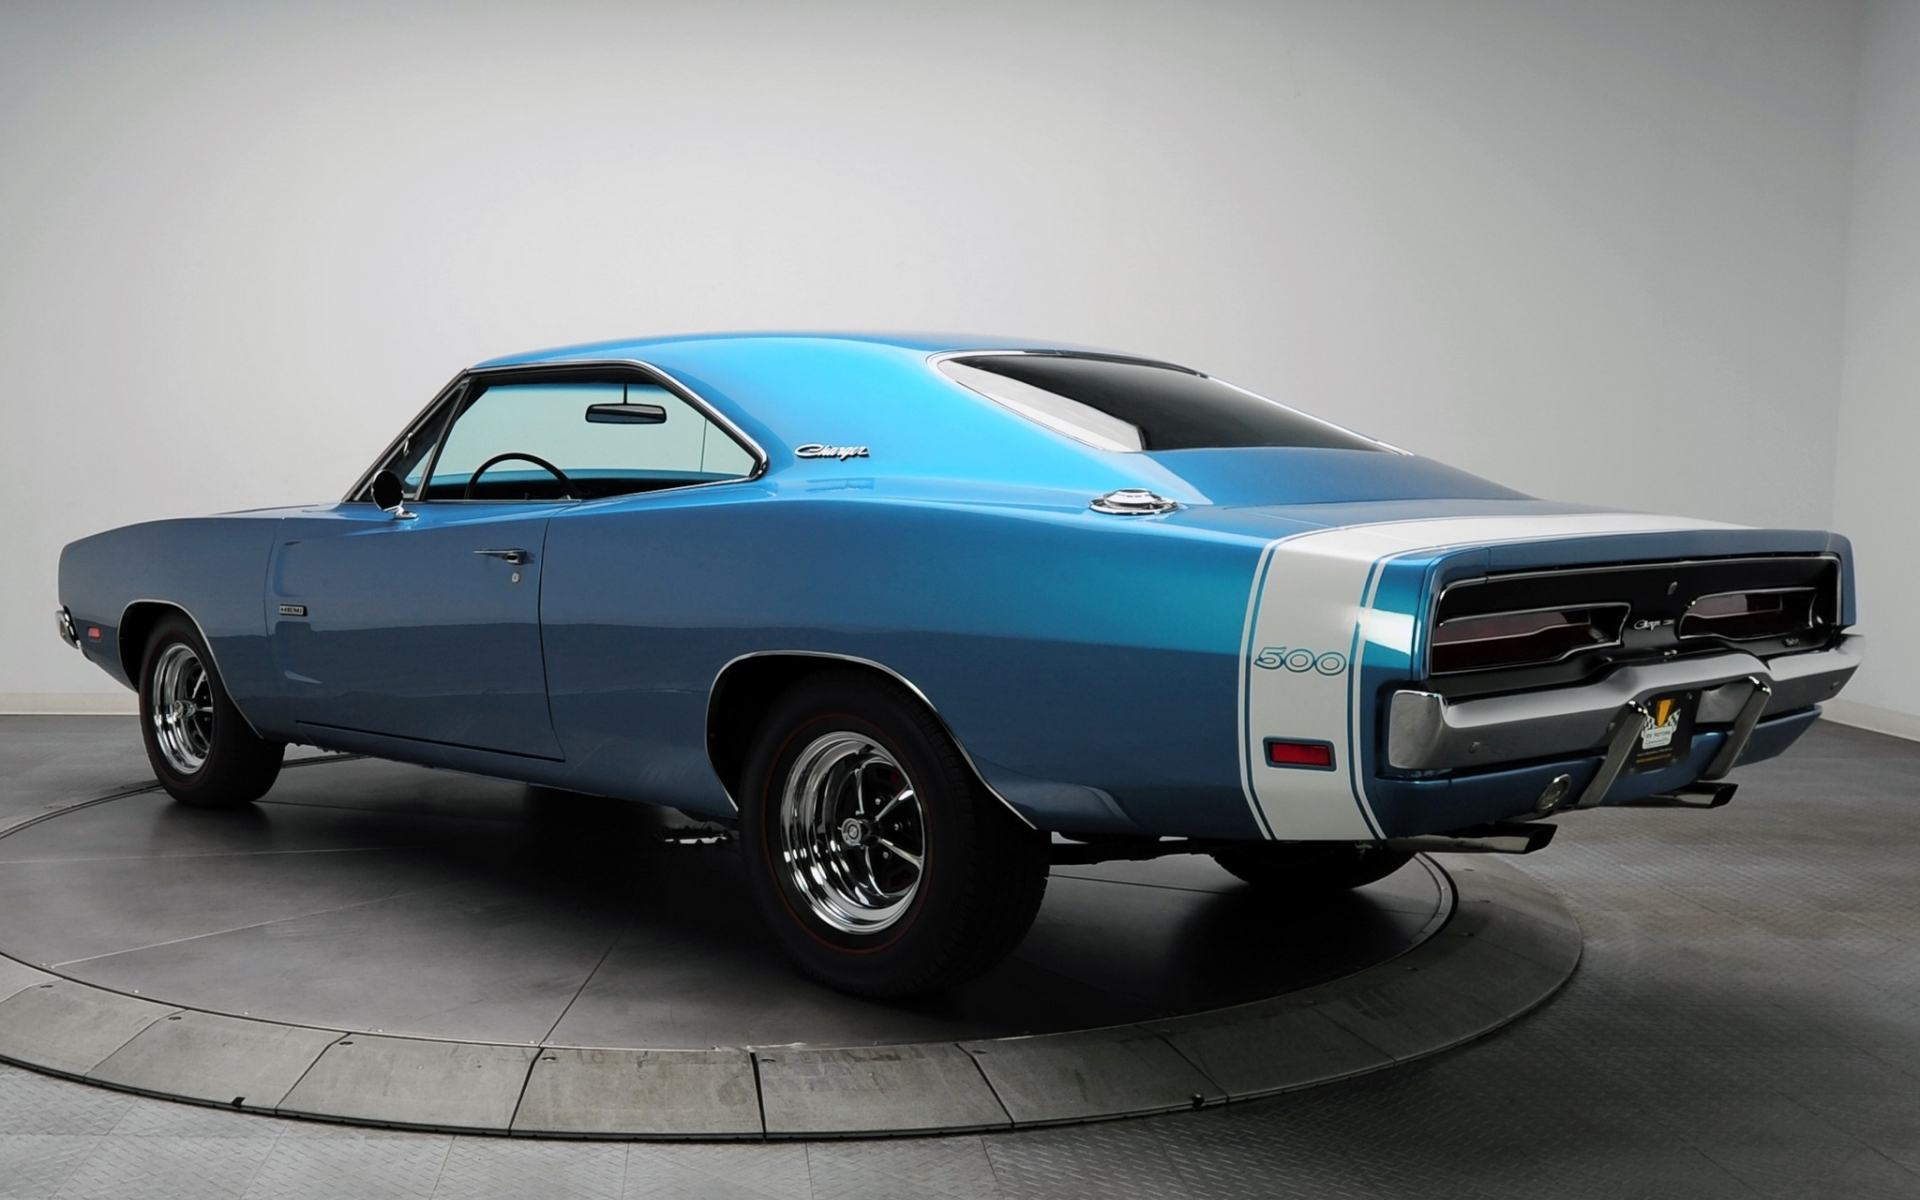 Classic American muscle car American classic muscle car background 1920x1200